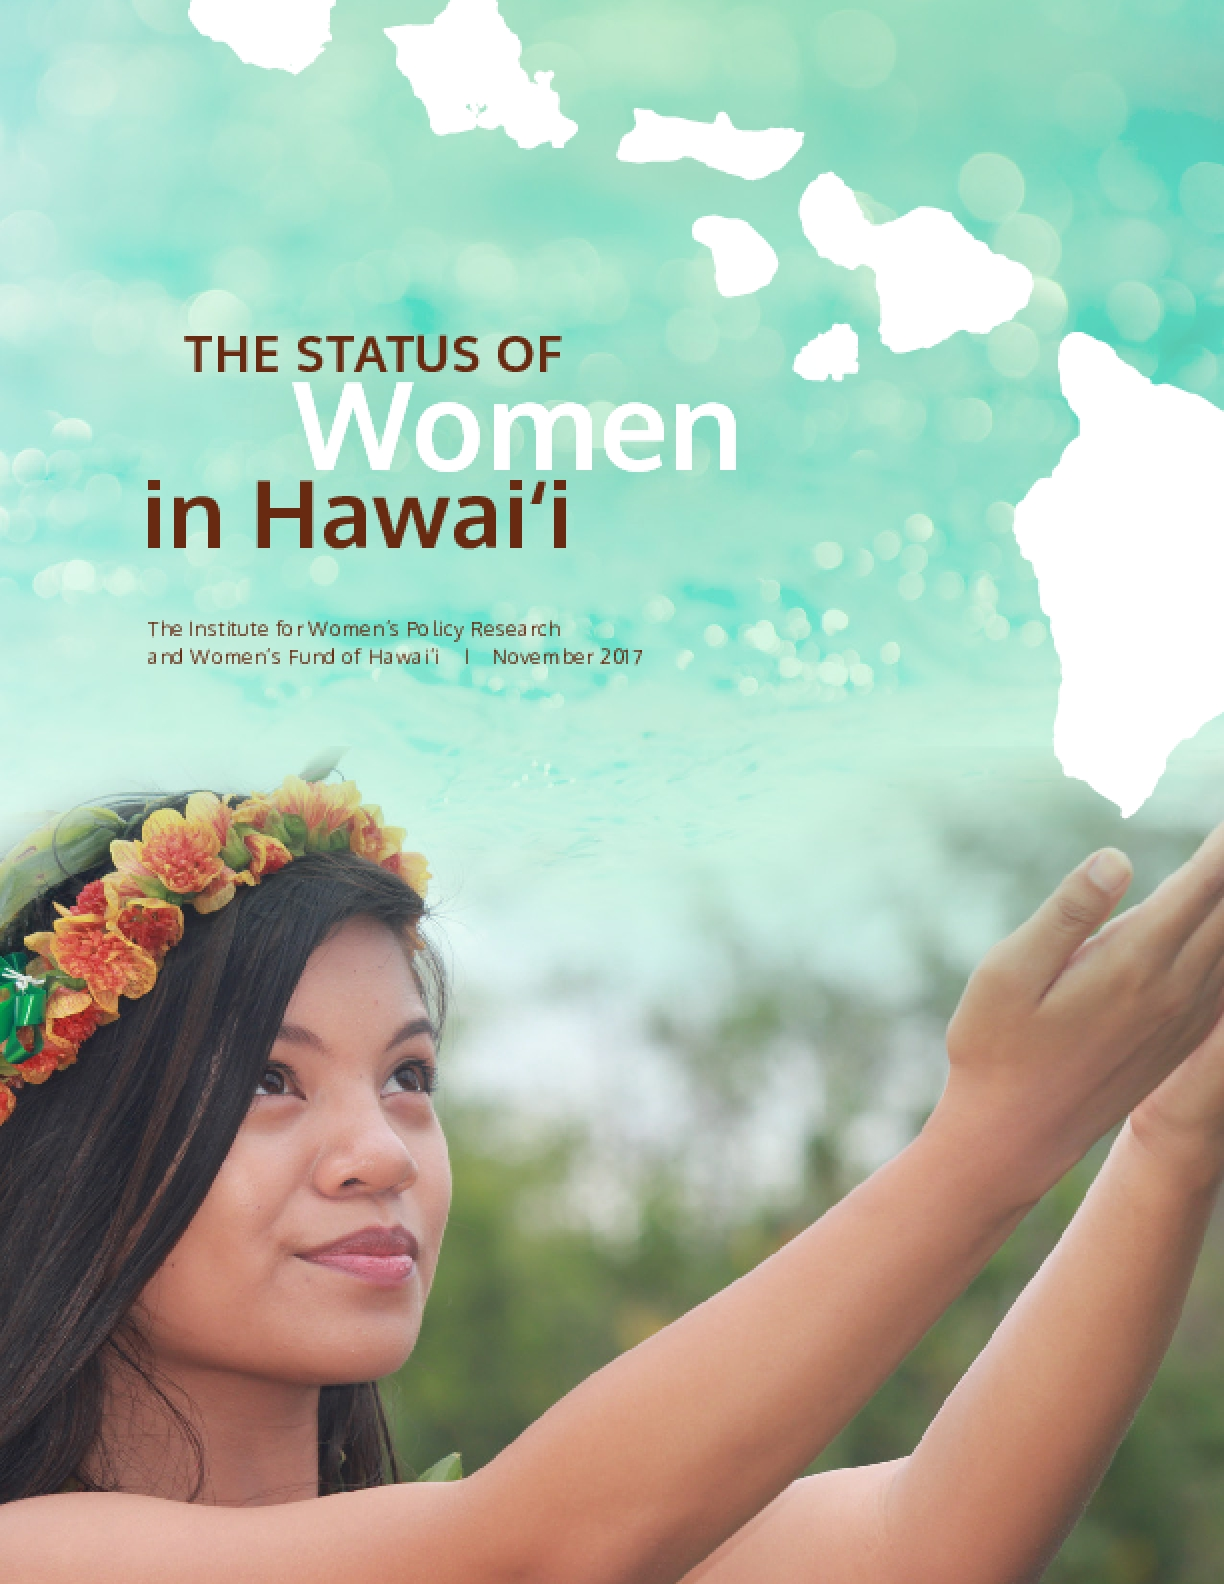 The Status of Women in Hawai'i